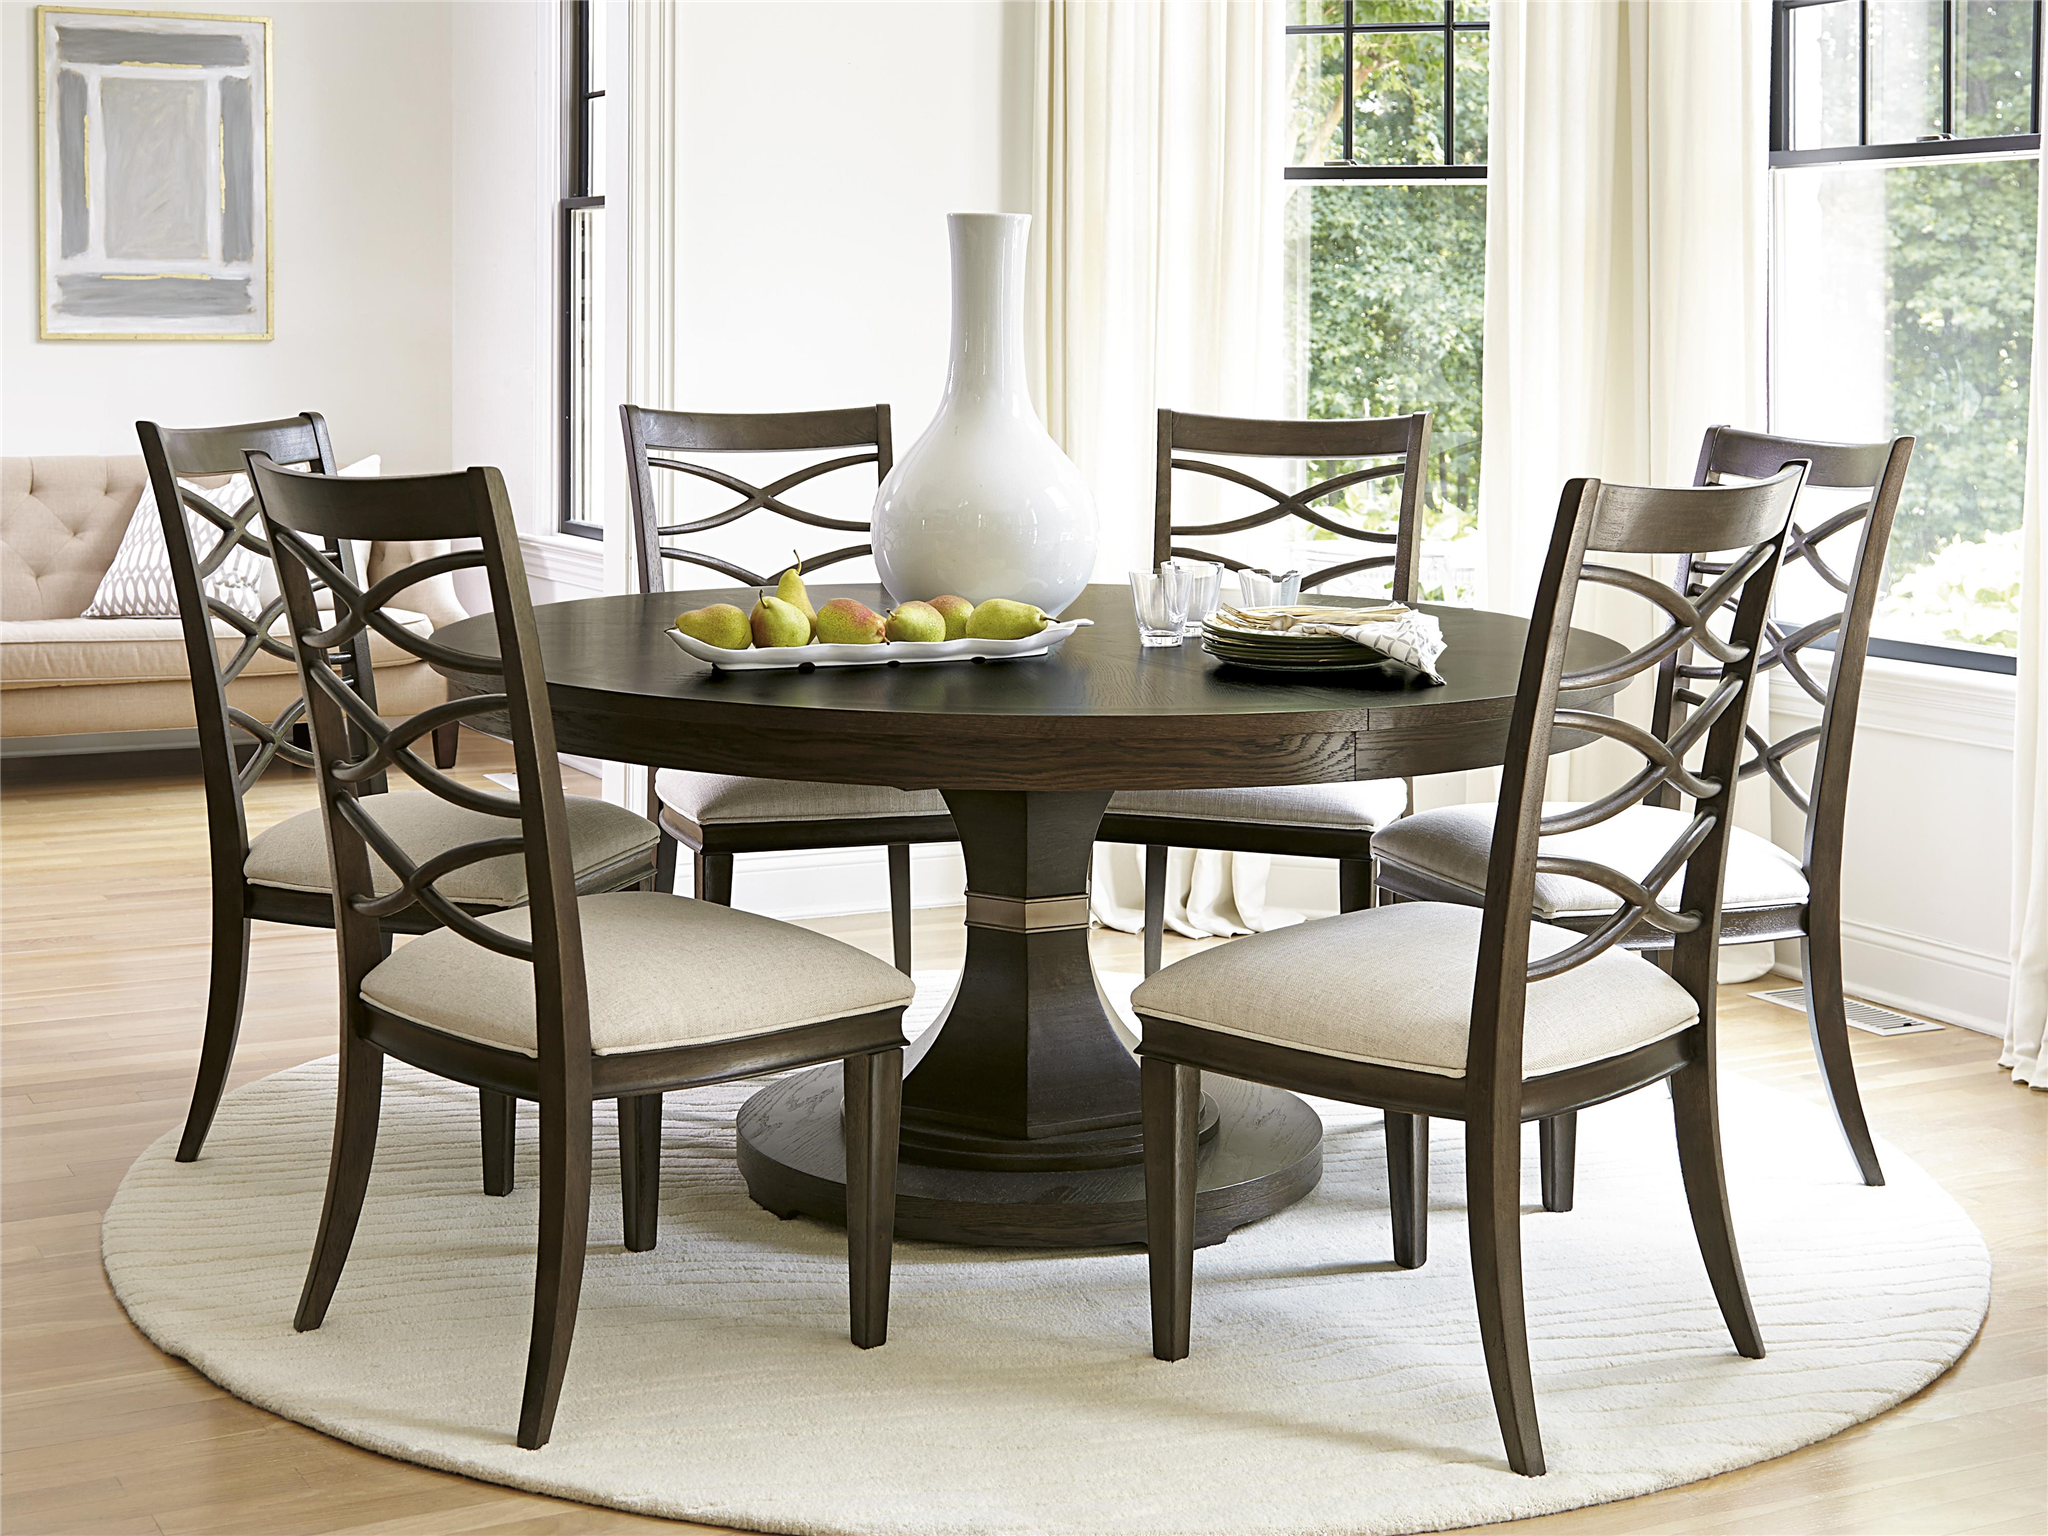 Round Dining Room Table universal furniture | california | round dining table